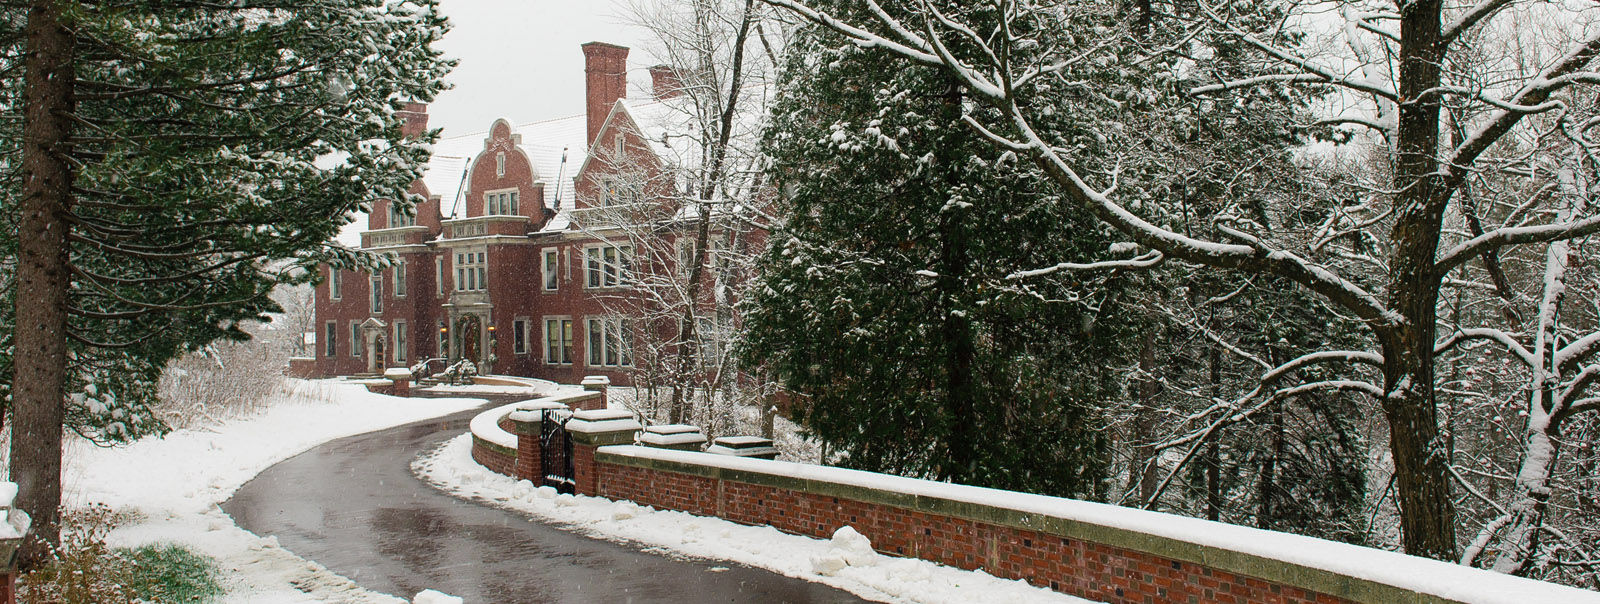 Glensheen Historic Estate, the perfect outdoor winter market venue in Duluth MN